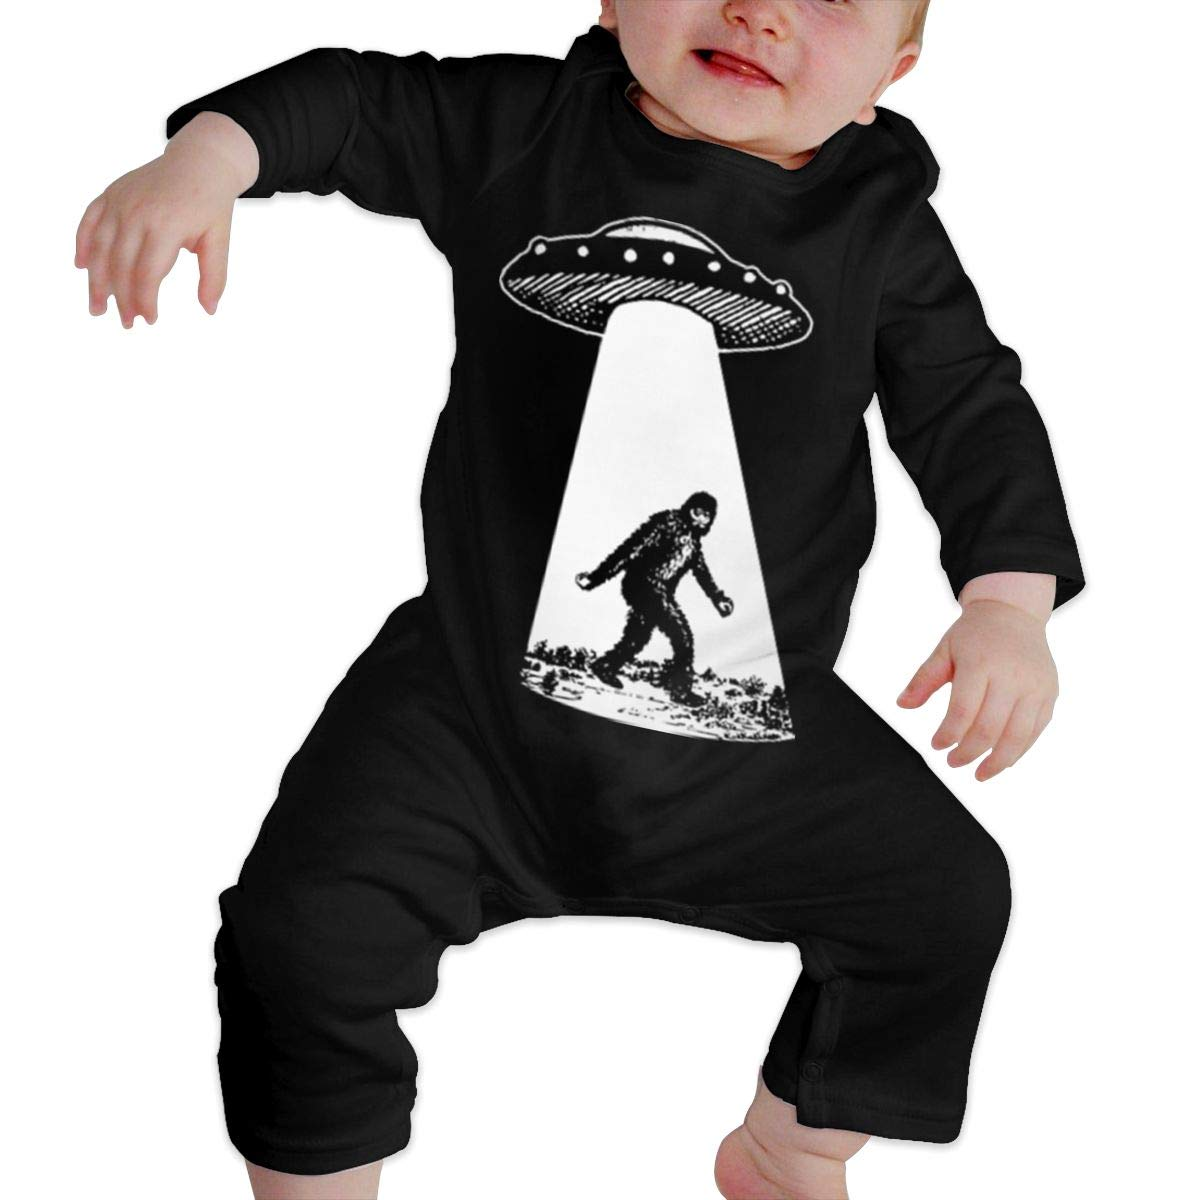 UFO Bigfoot Romper Jumpsuit Long Sleeve Bodysuit Overalls Outfits Clothes for Newborn Baby Boy Girl